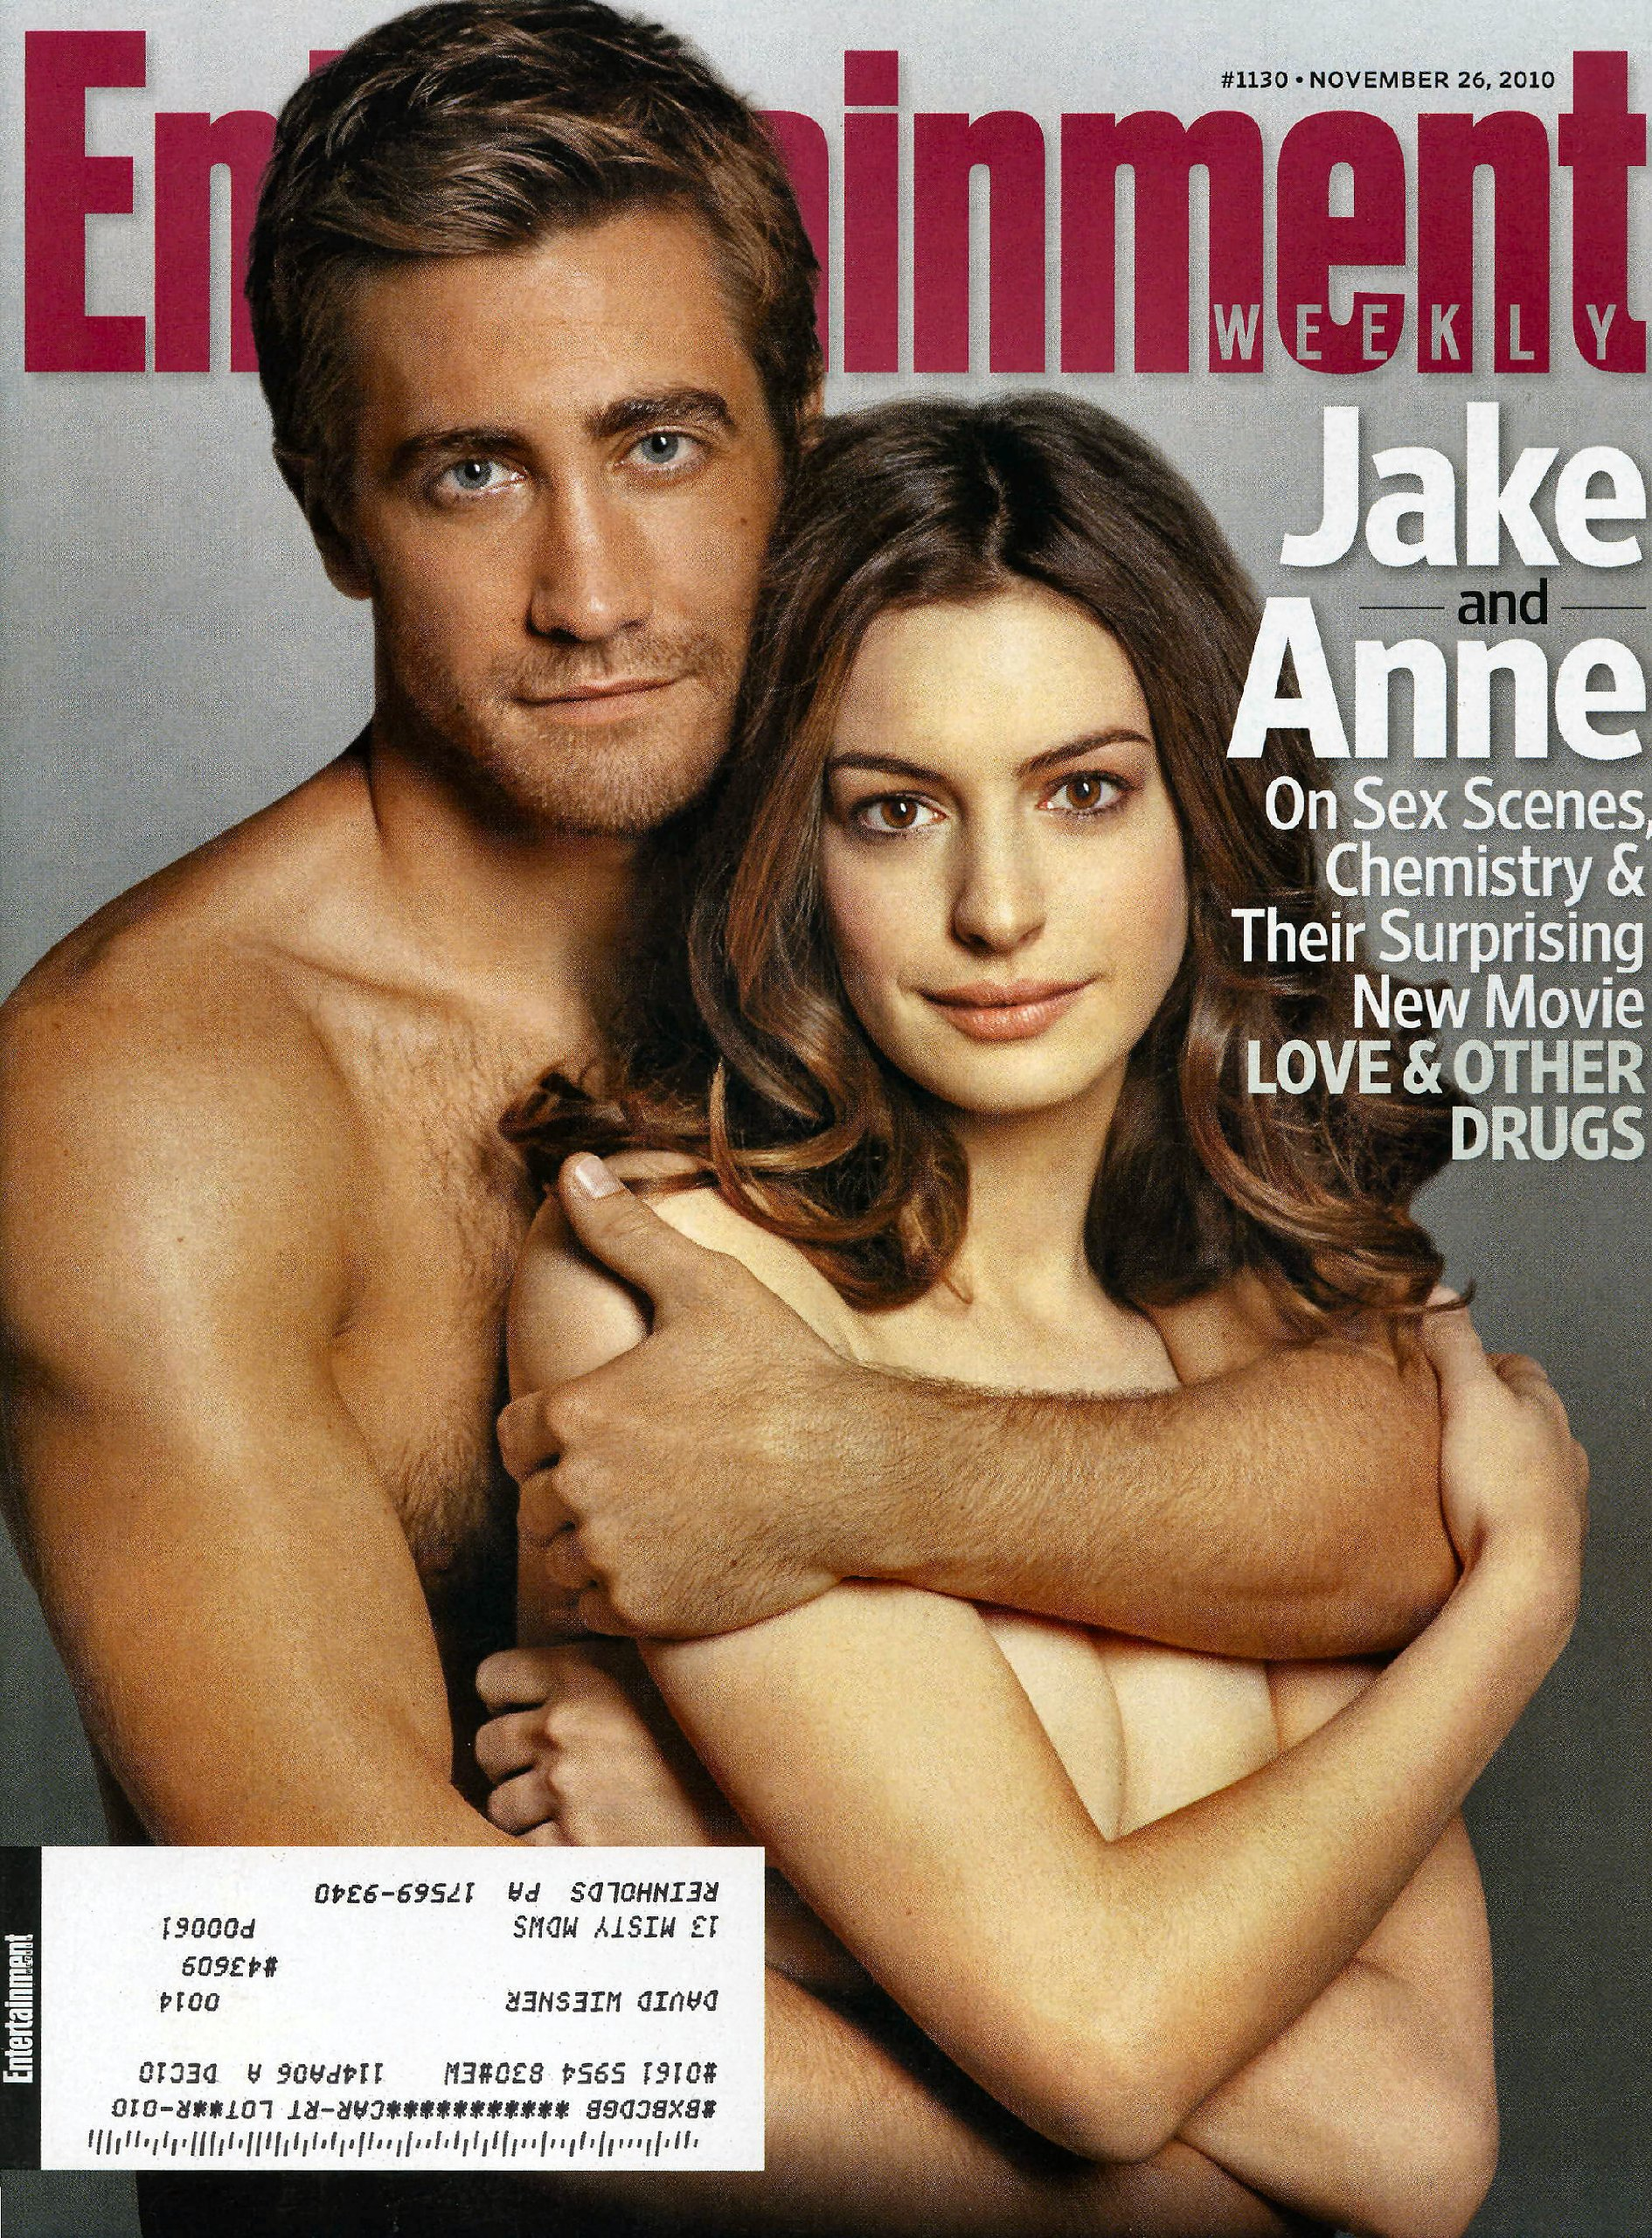 Entertainment Weekly Magazine November 26, 2010 (One of 3 covers for the 11/26/2010 issue featuring Jake Gyllenhaal and Anne Hathaway, #1130) PDF